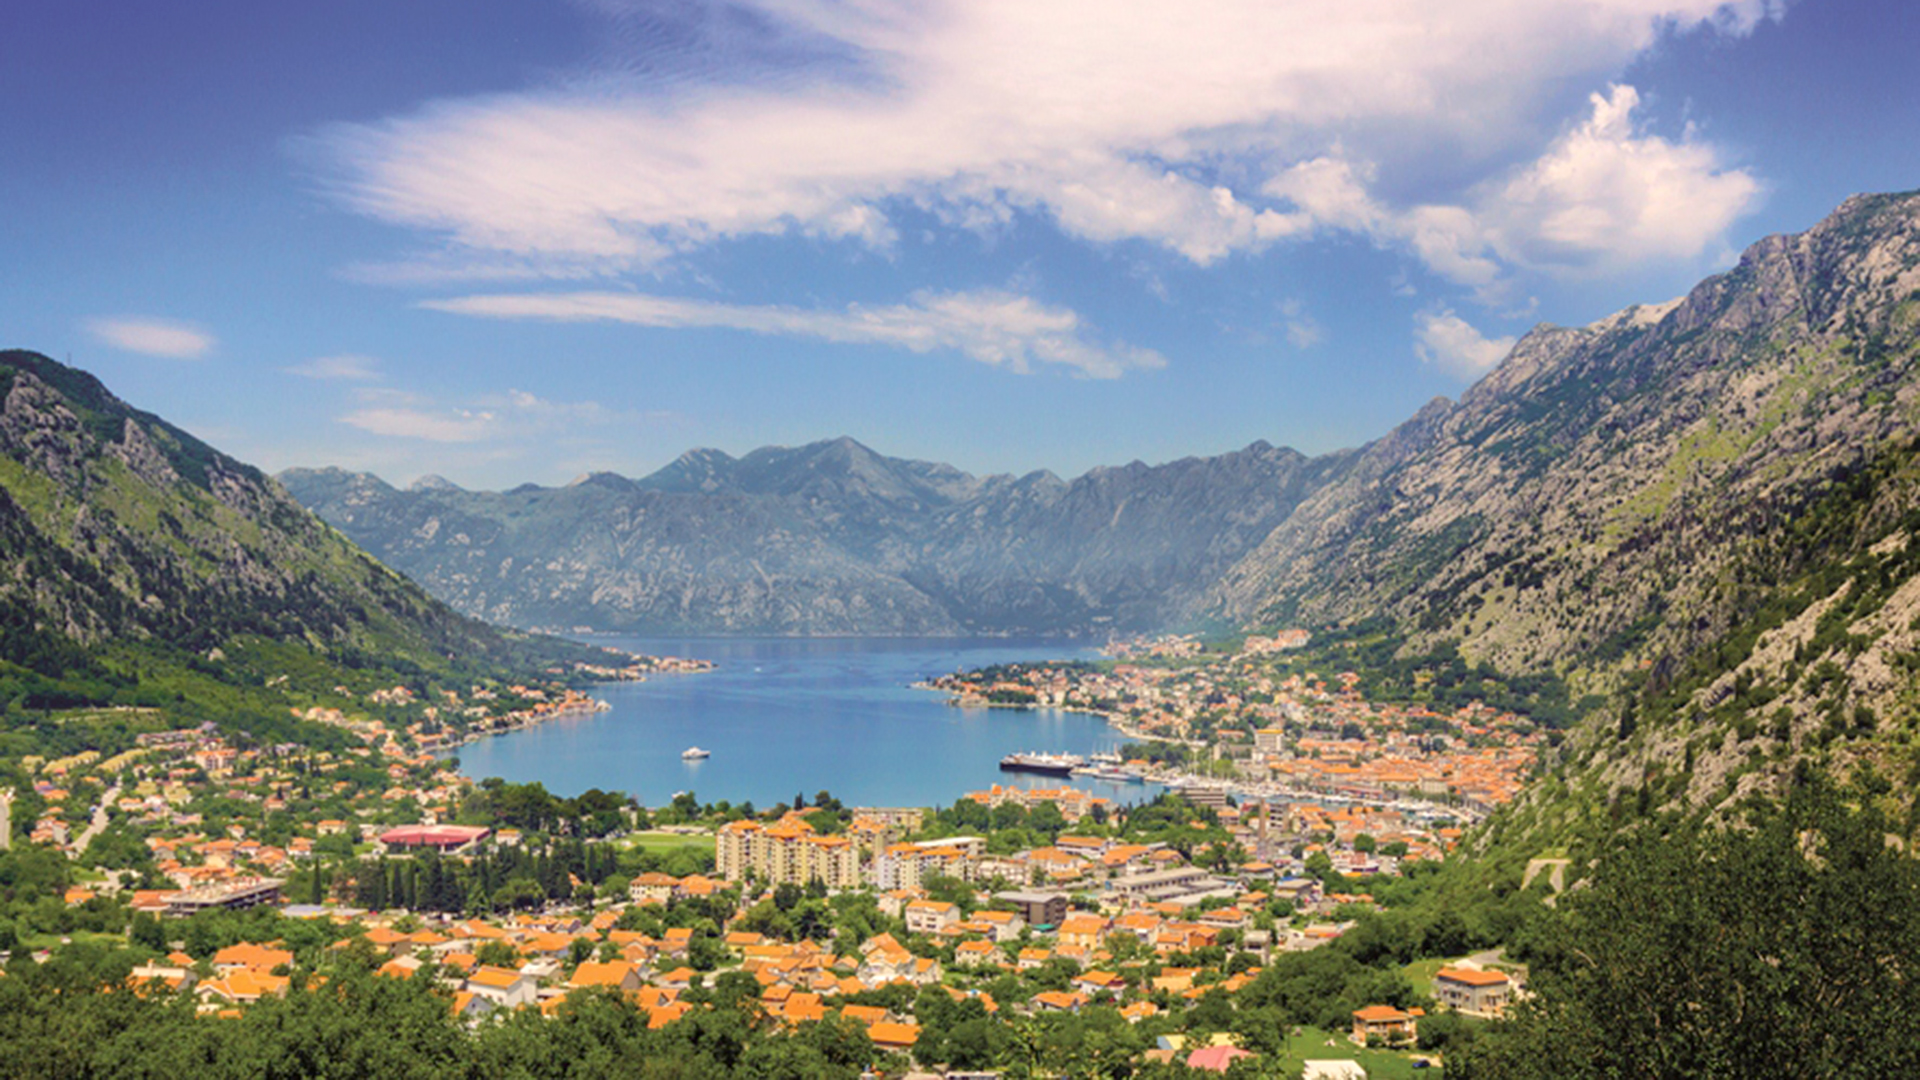 Lonely Planet's top travel destinations for 2016 include Transylvania and Kotor